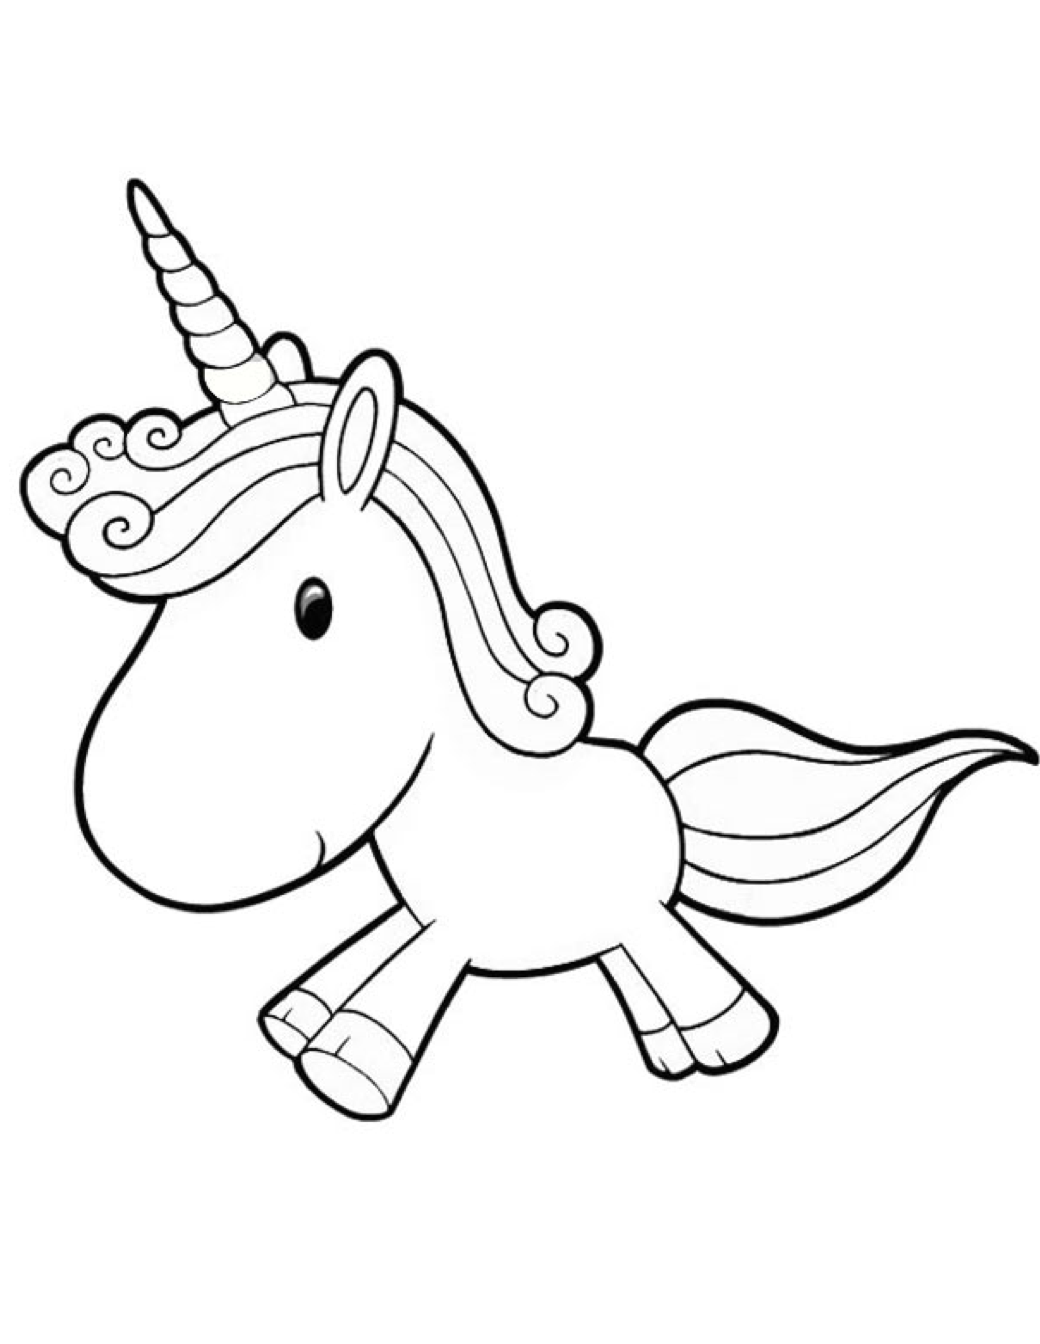 Print cute coloring pages for free and color online our cute coloring ! For kids amp adults you can print cute or color online